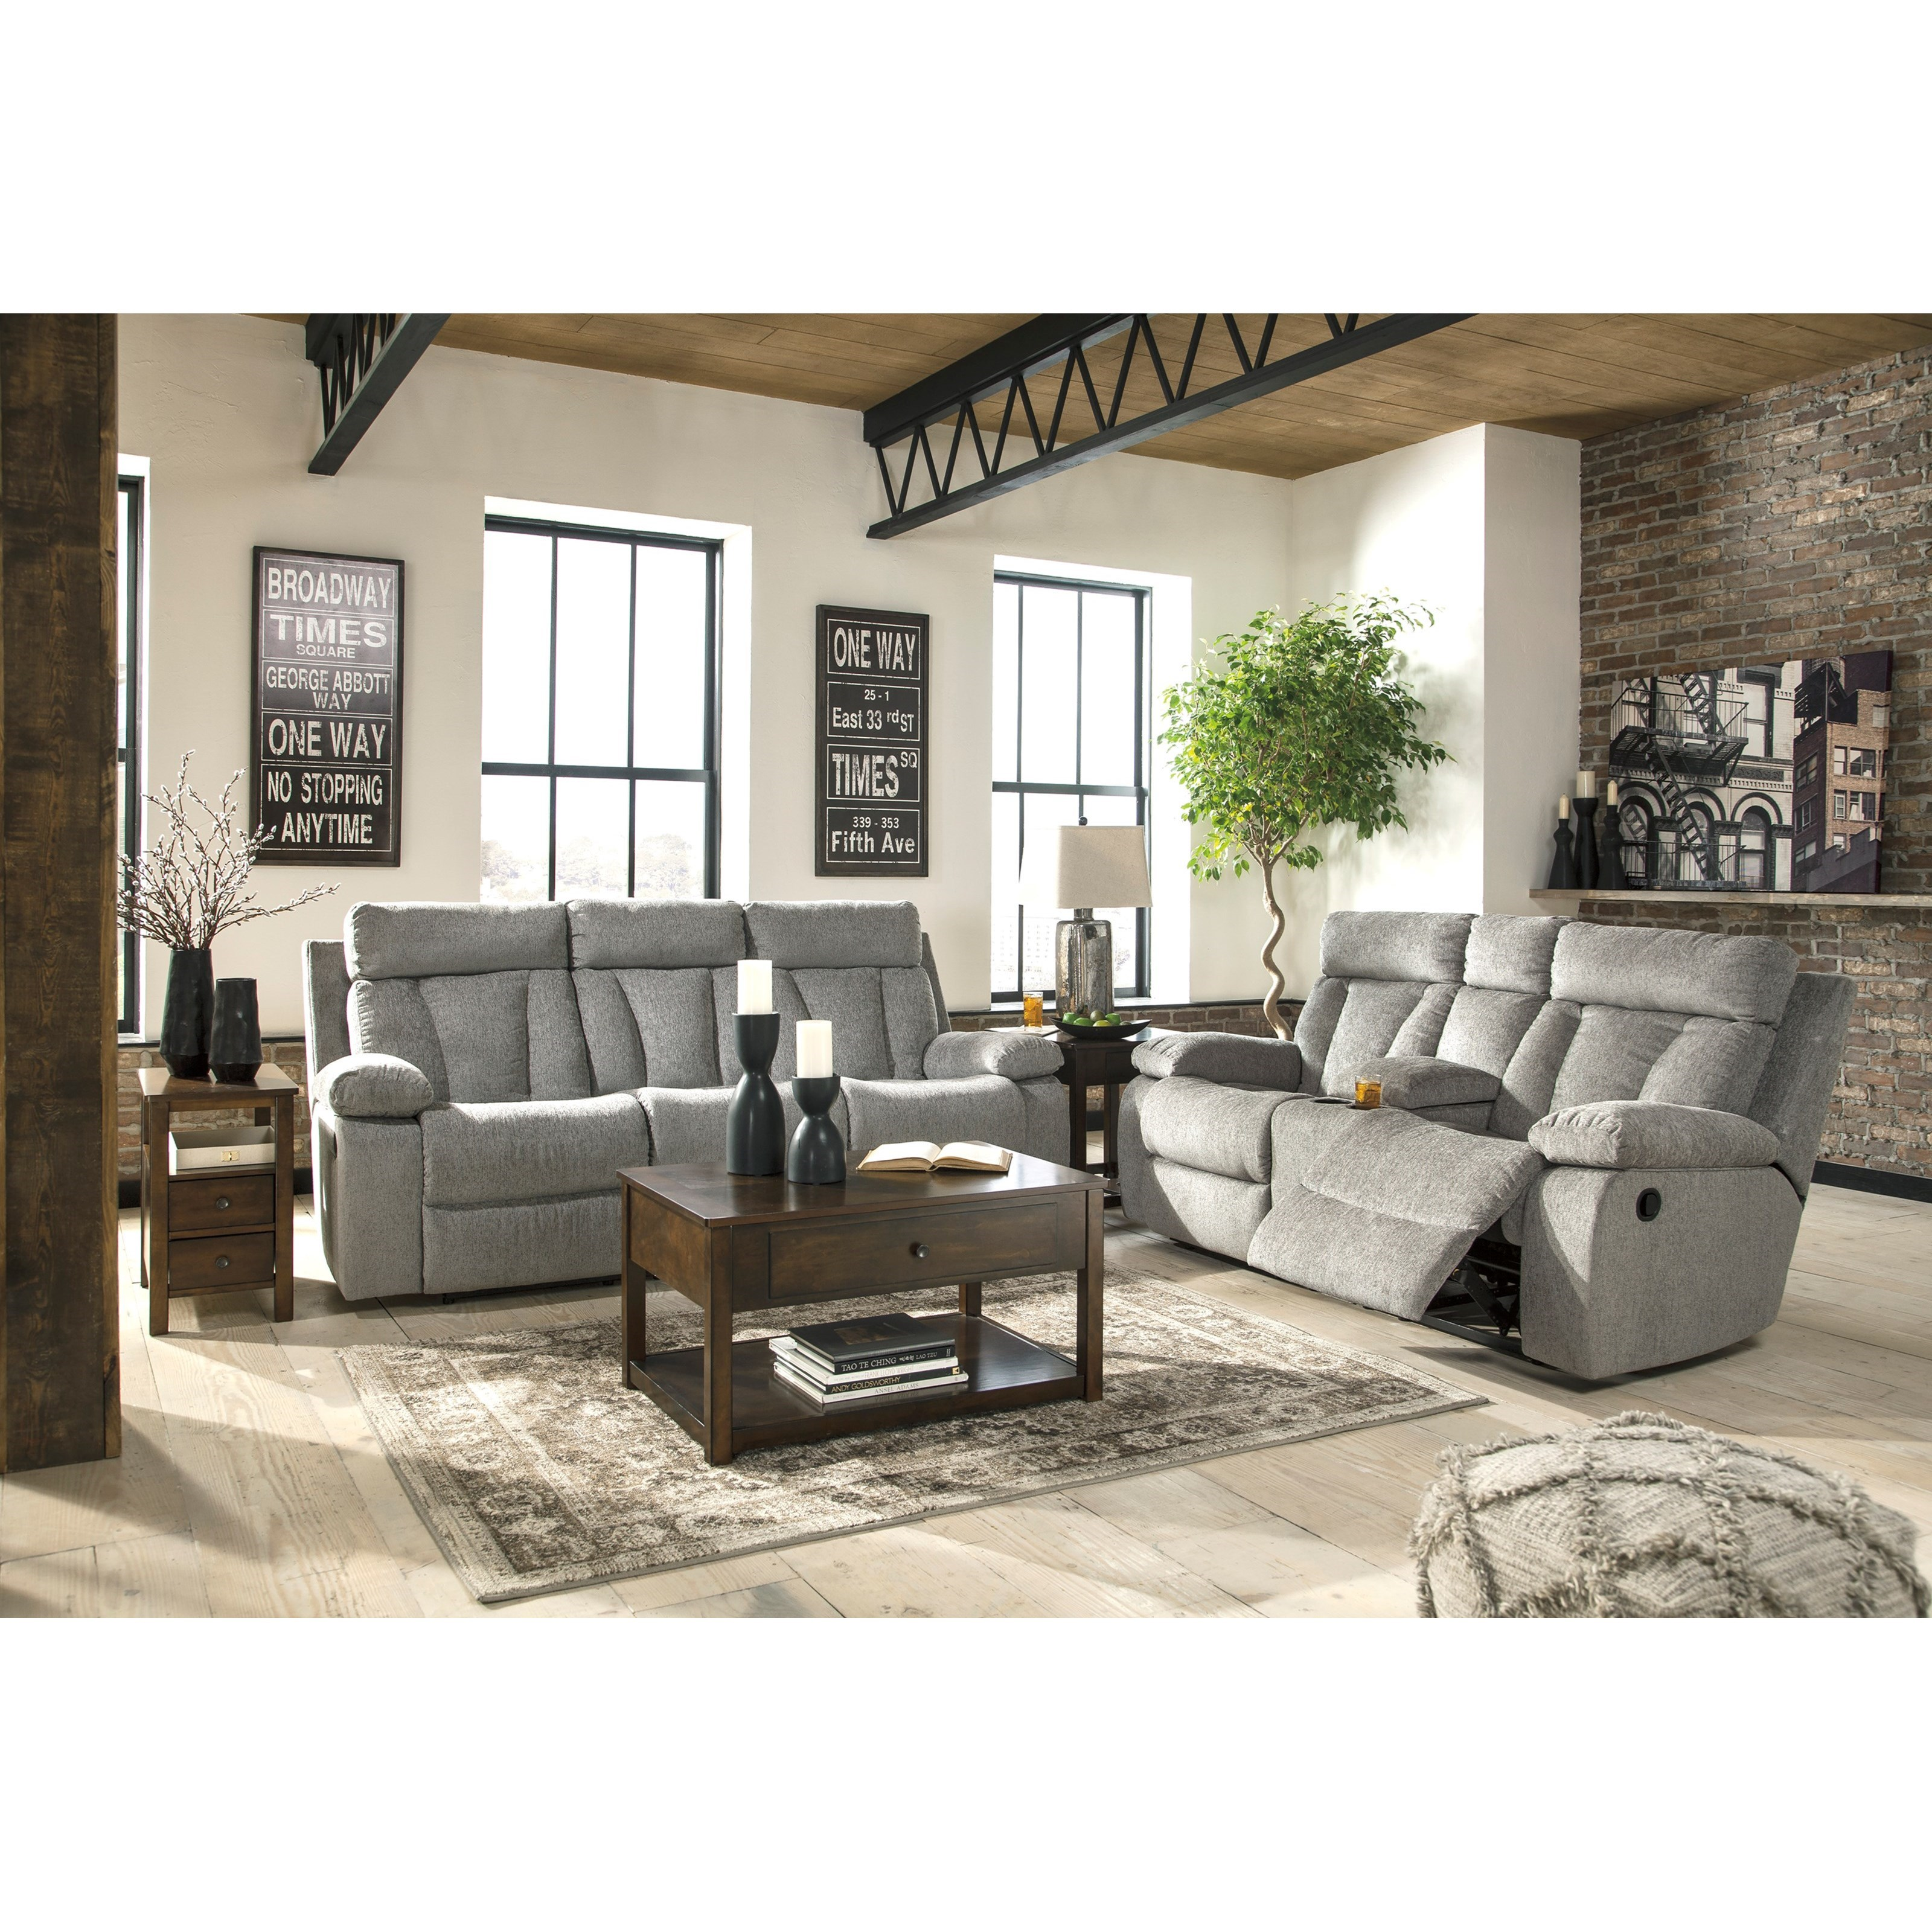 Signature Design By Ashley Mitchiner Reclining Living Room